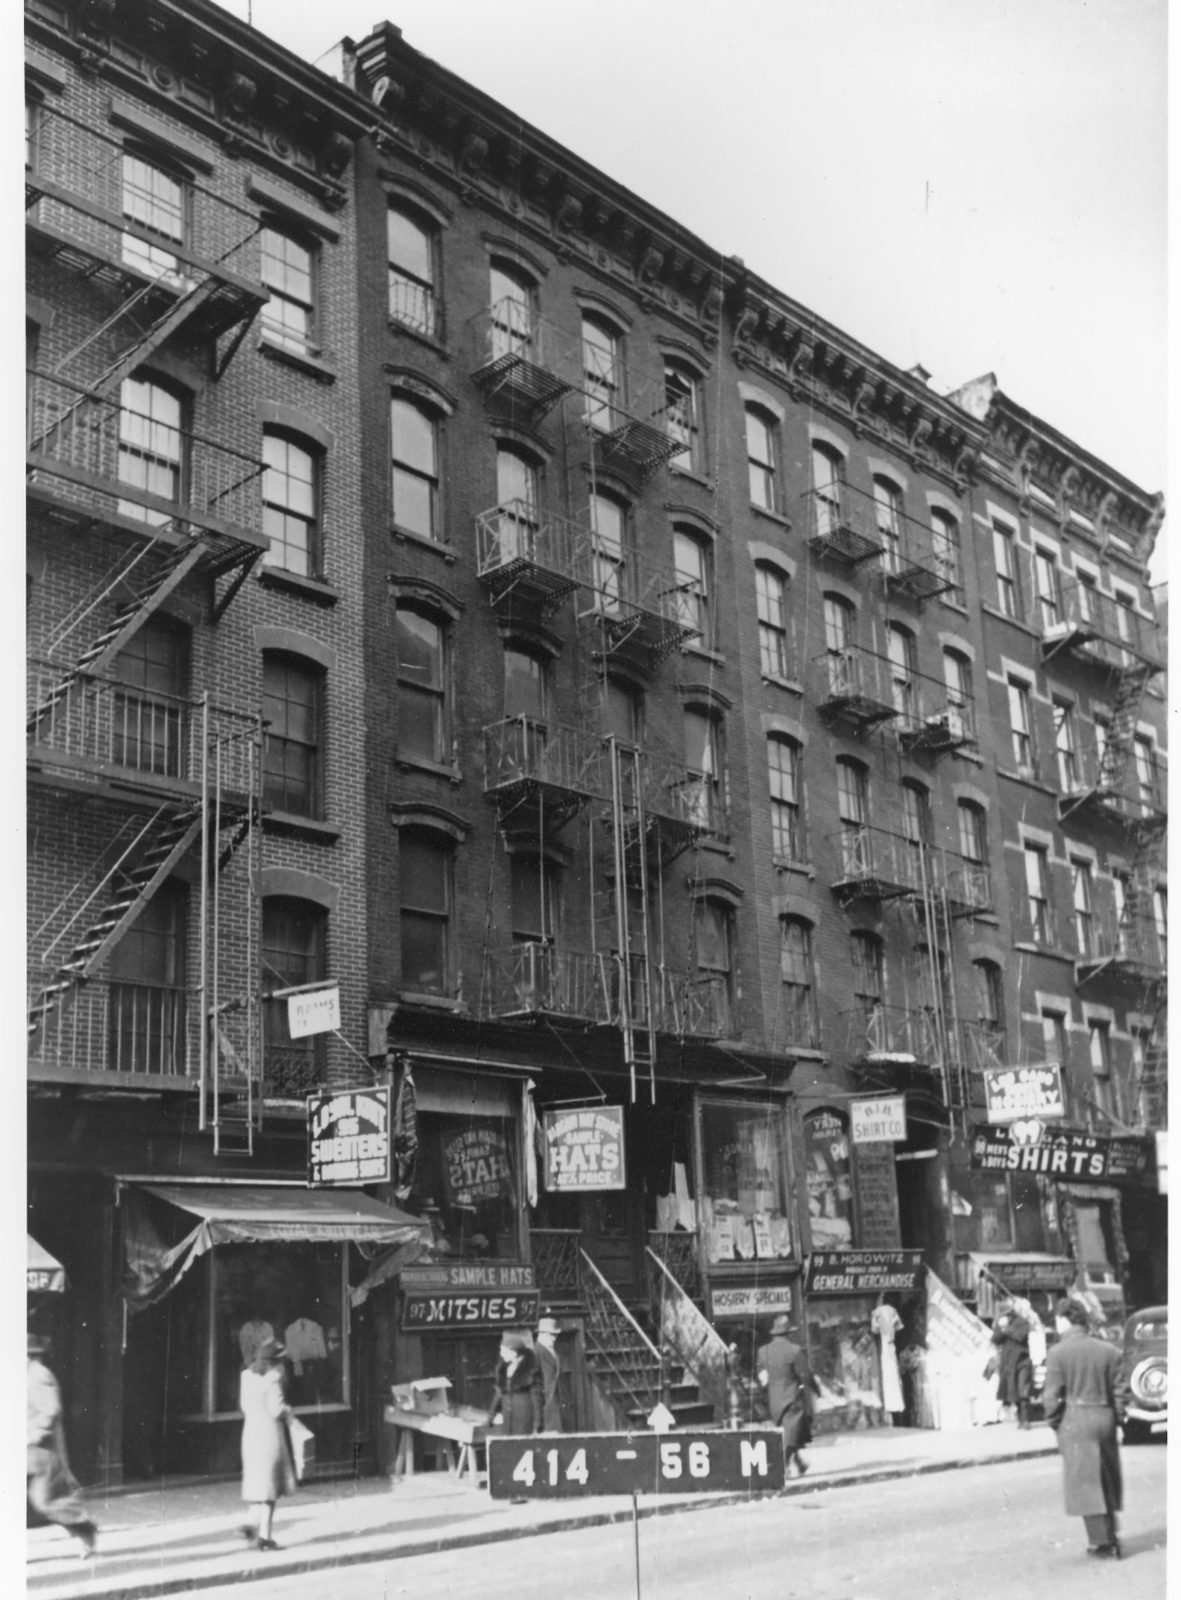 Exterior of 97 Orchard Street in 1940.